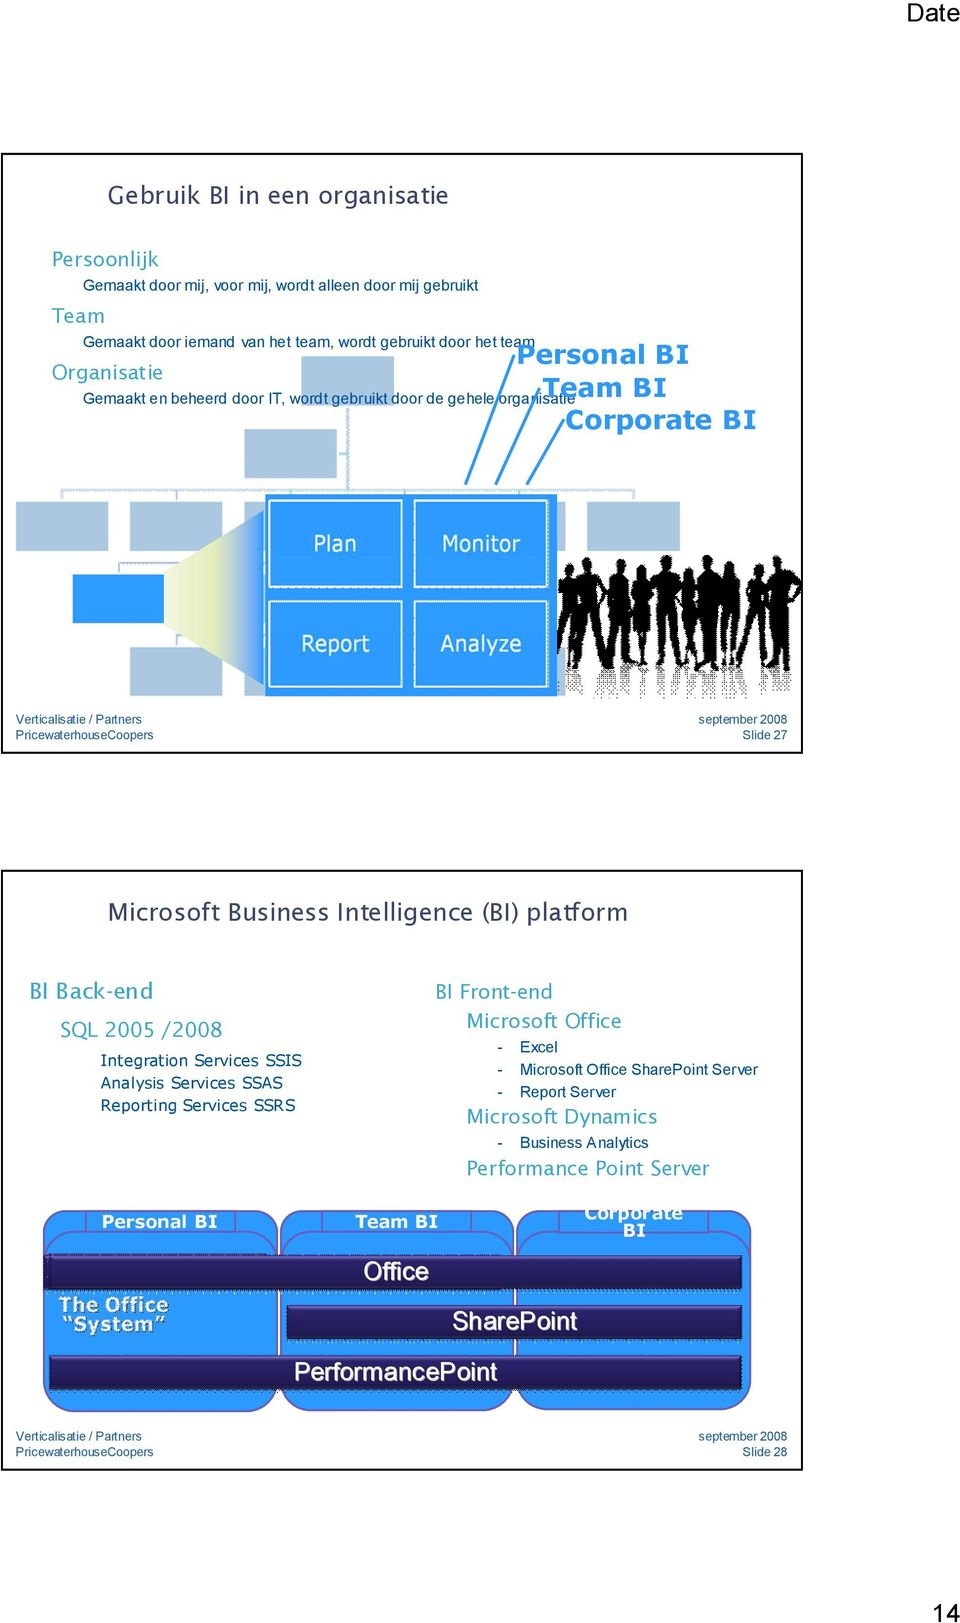 /2008 Integration Services SSIS Analysis Services SSAS Reporting Services SSRS BI Front-end Microsoft Office - Excel - Microsoft Office SharePoint Server - Report Server Microsoft